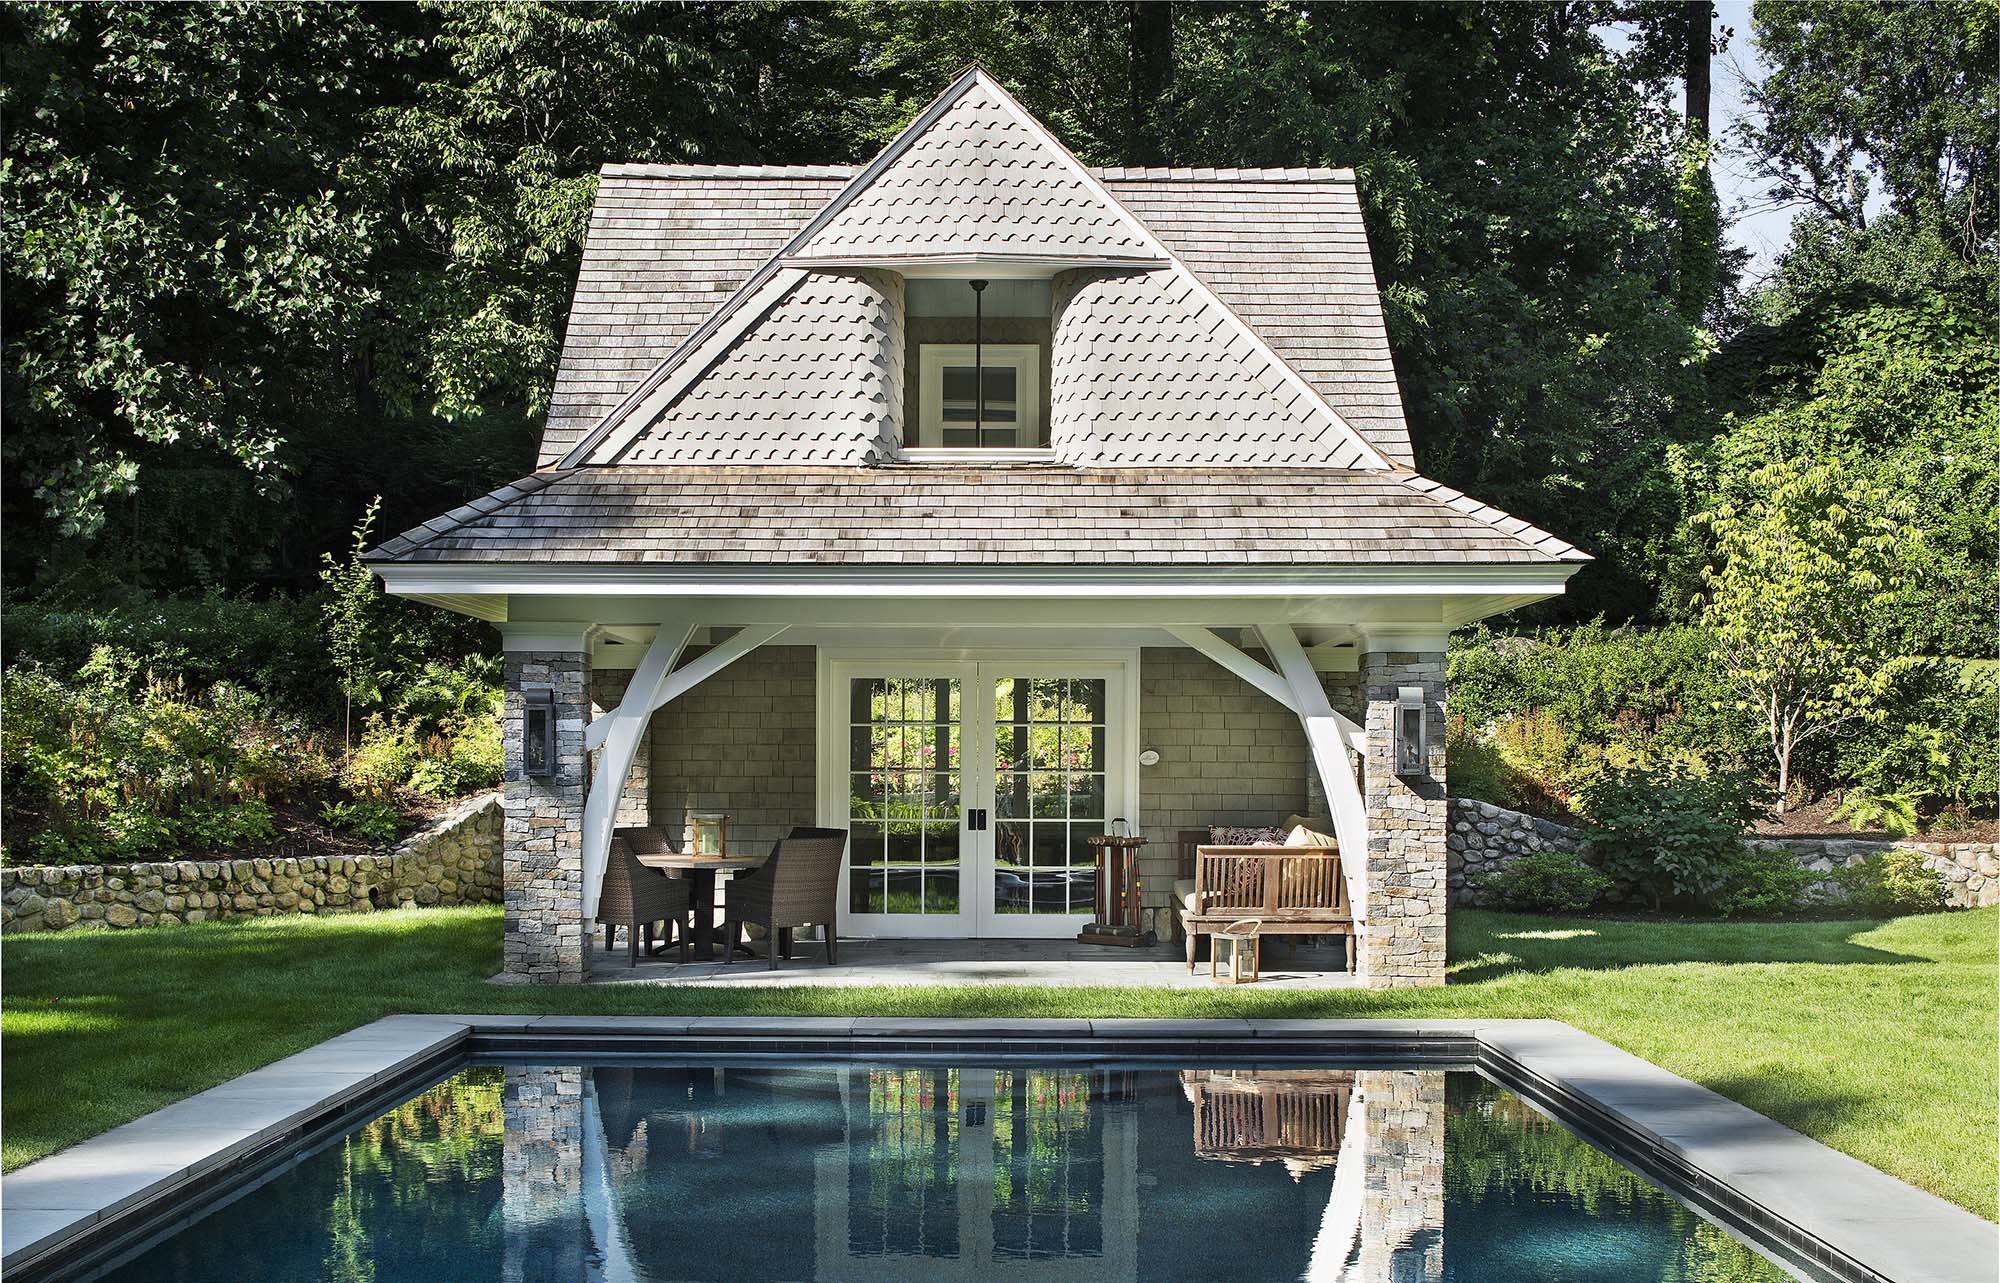 11 Best Pool House Designs Pool House Ideas Design Inspiration within Backyard Pool House Ideas